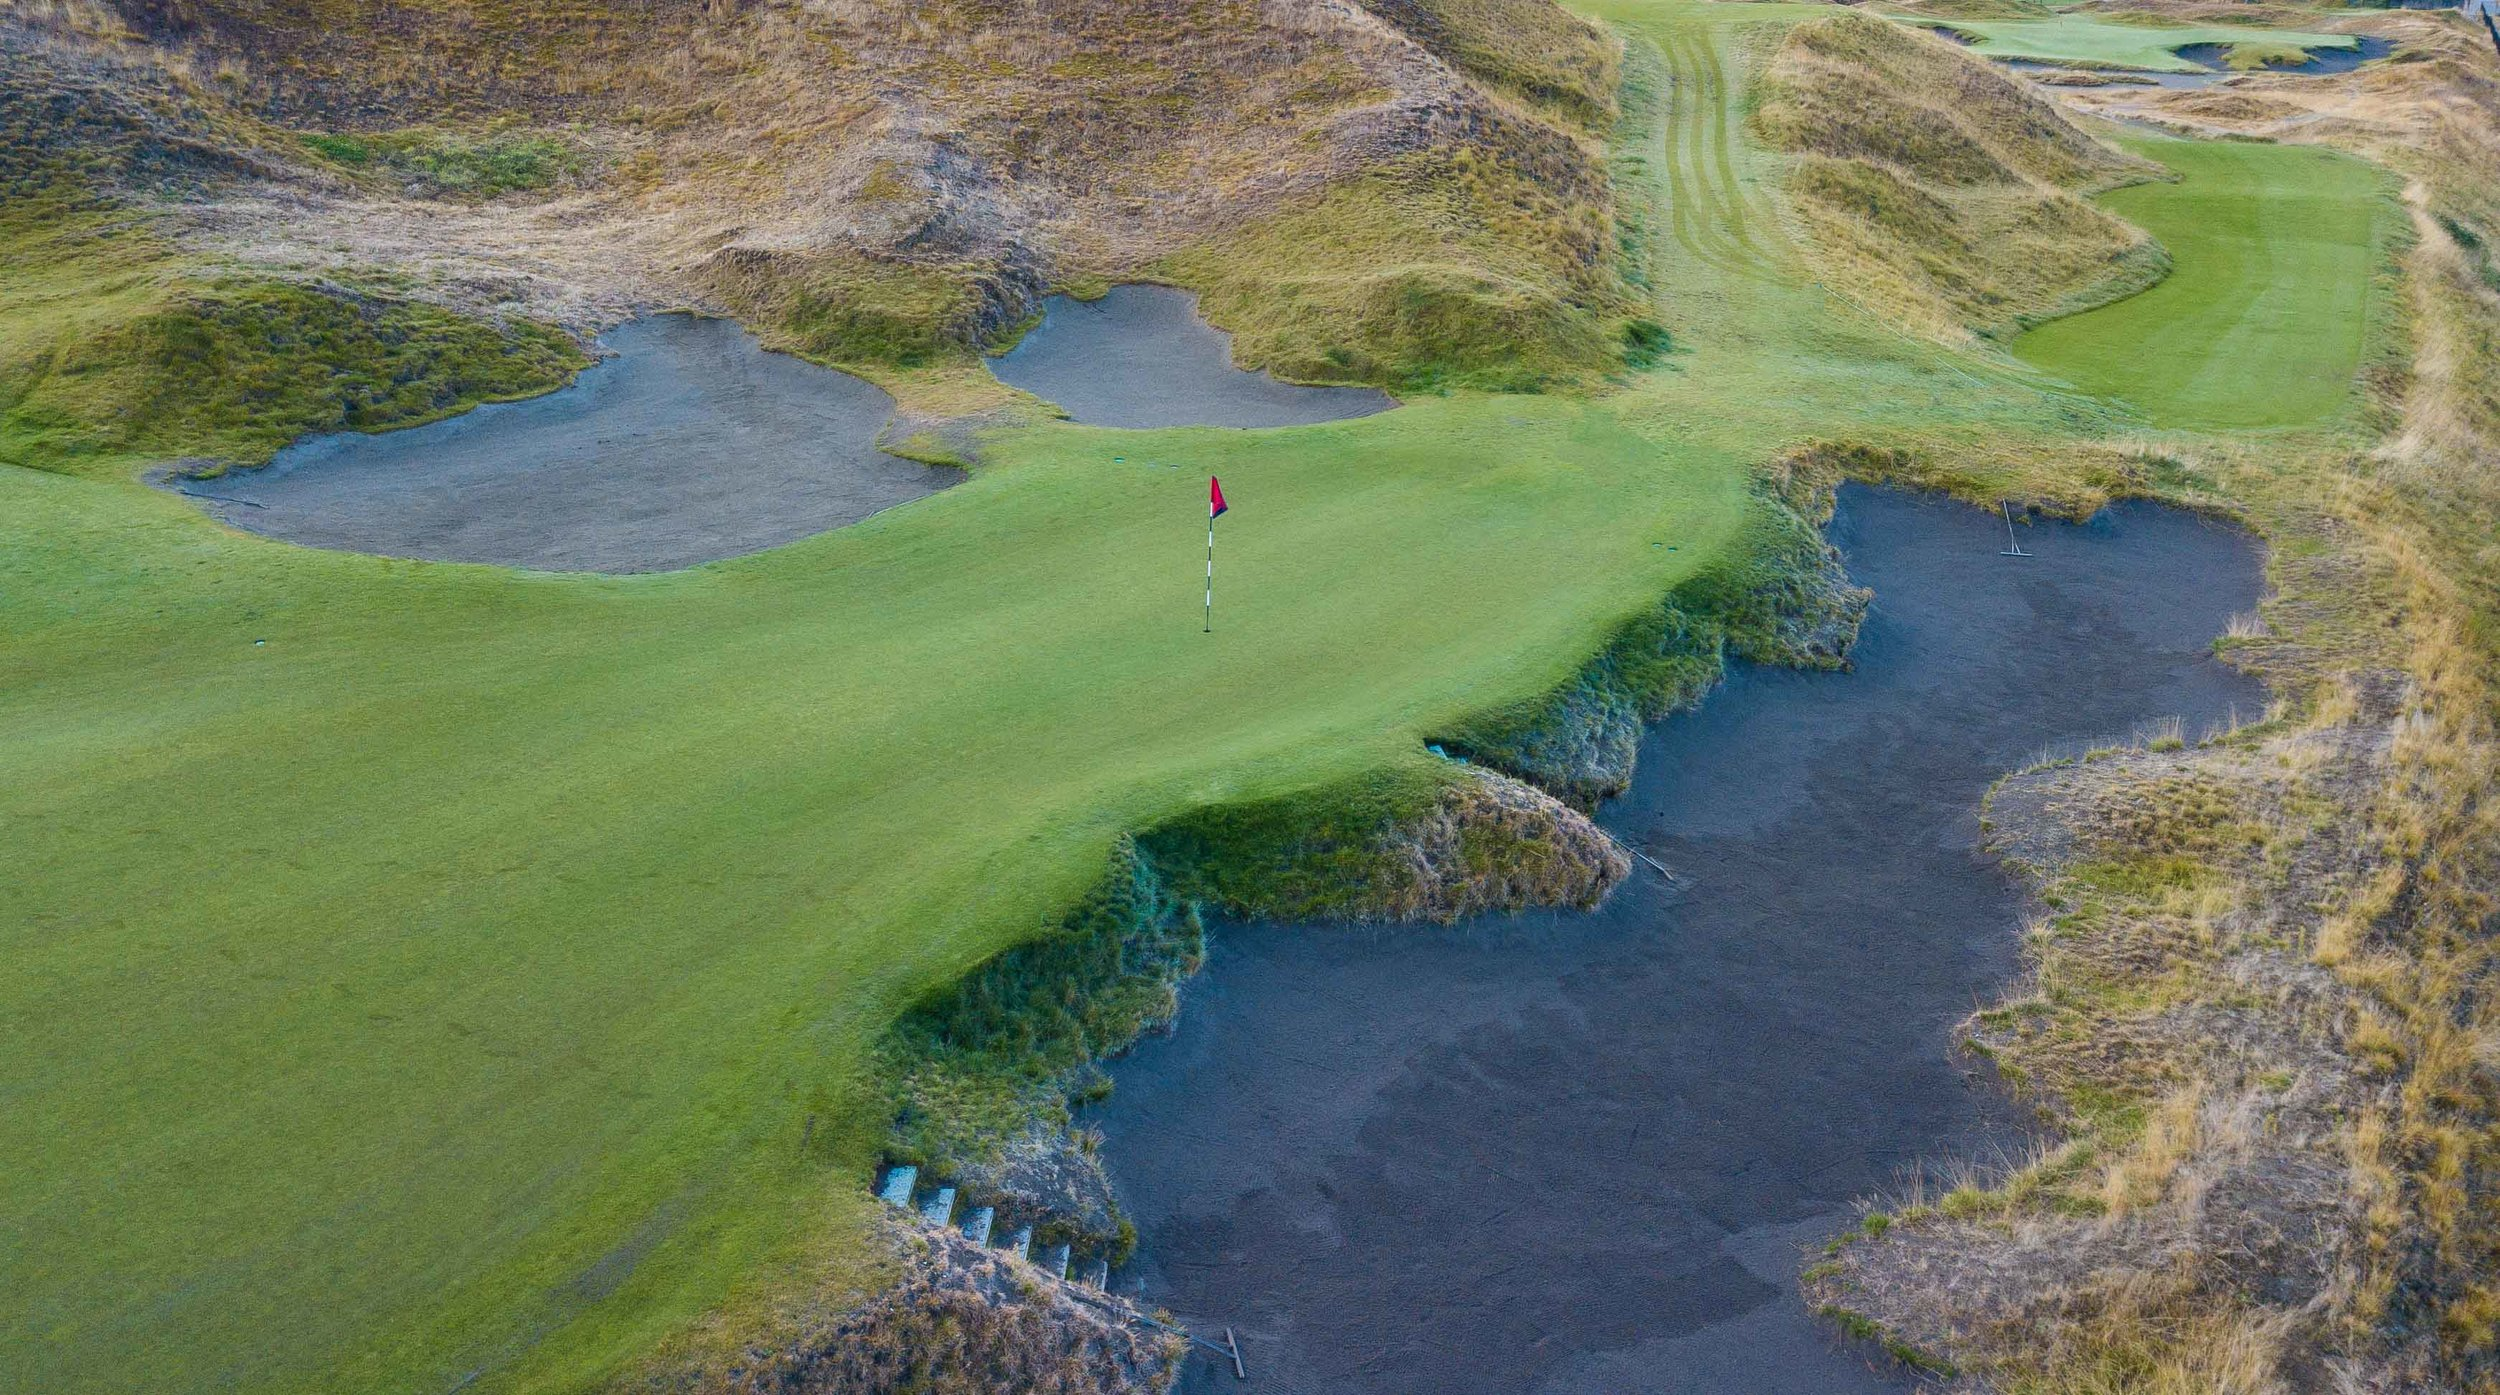 The kickoff event at Chambers Bay